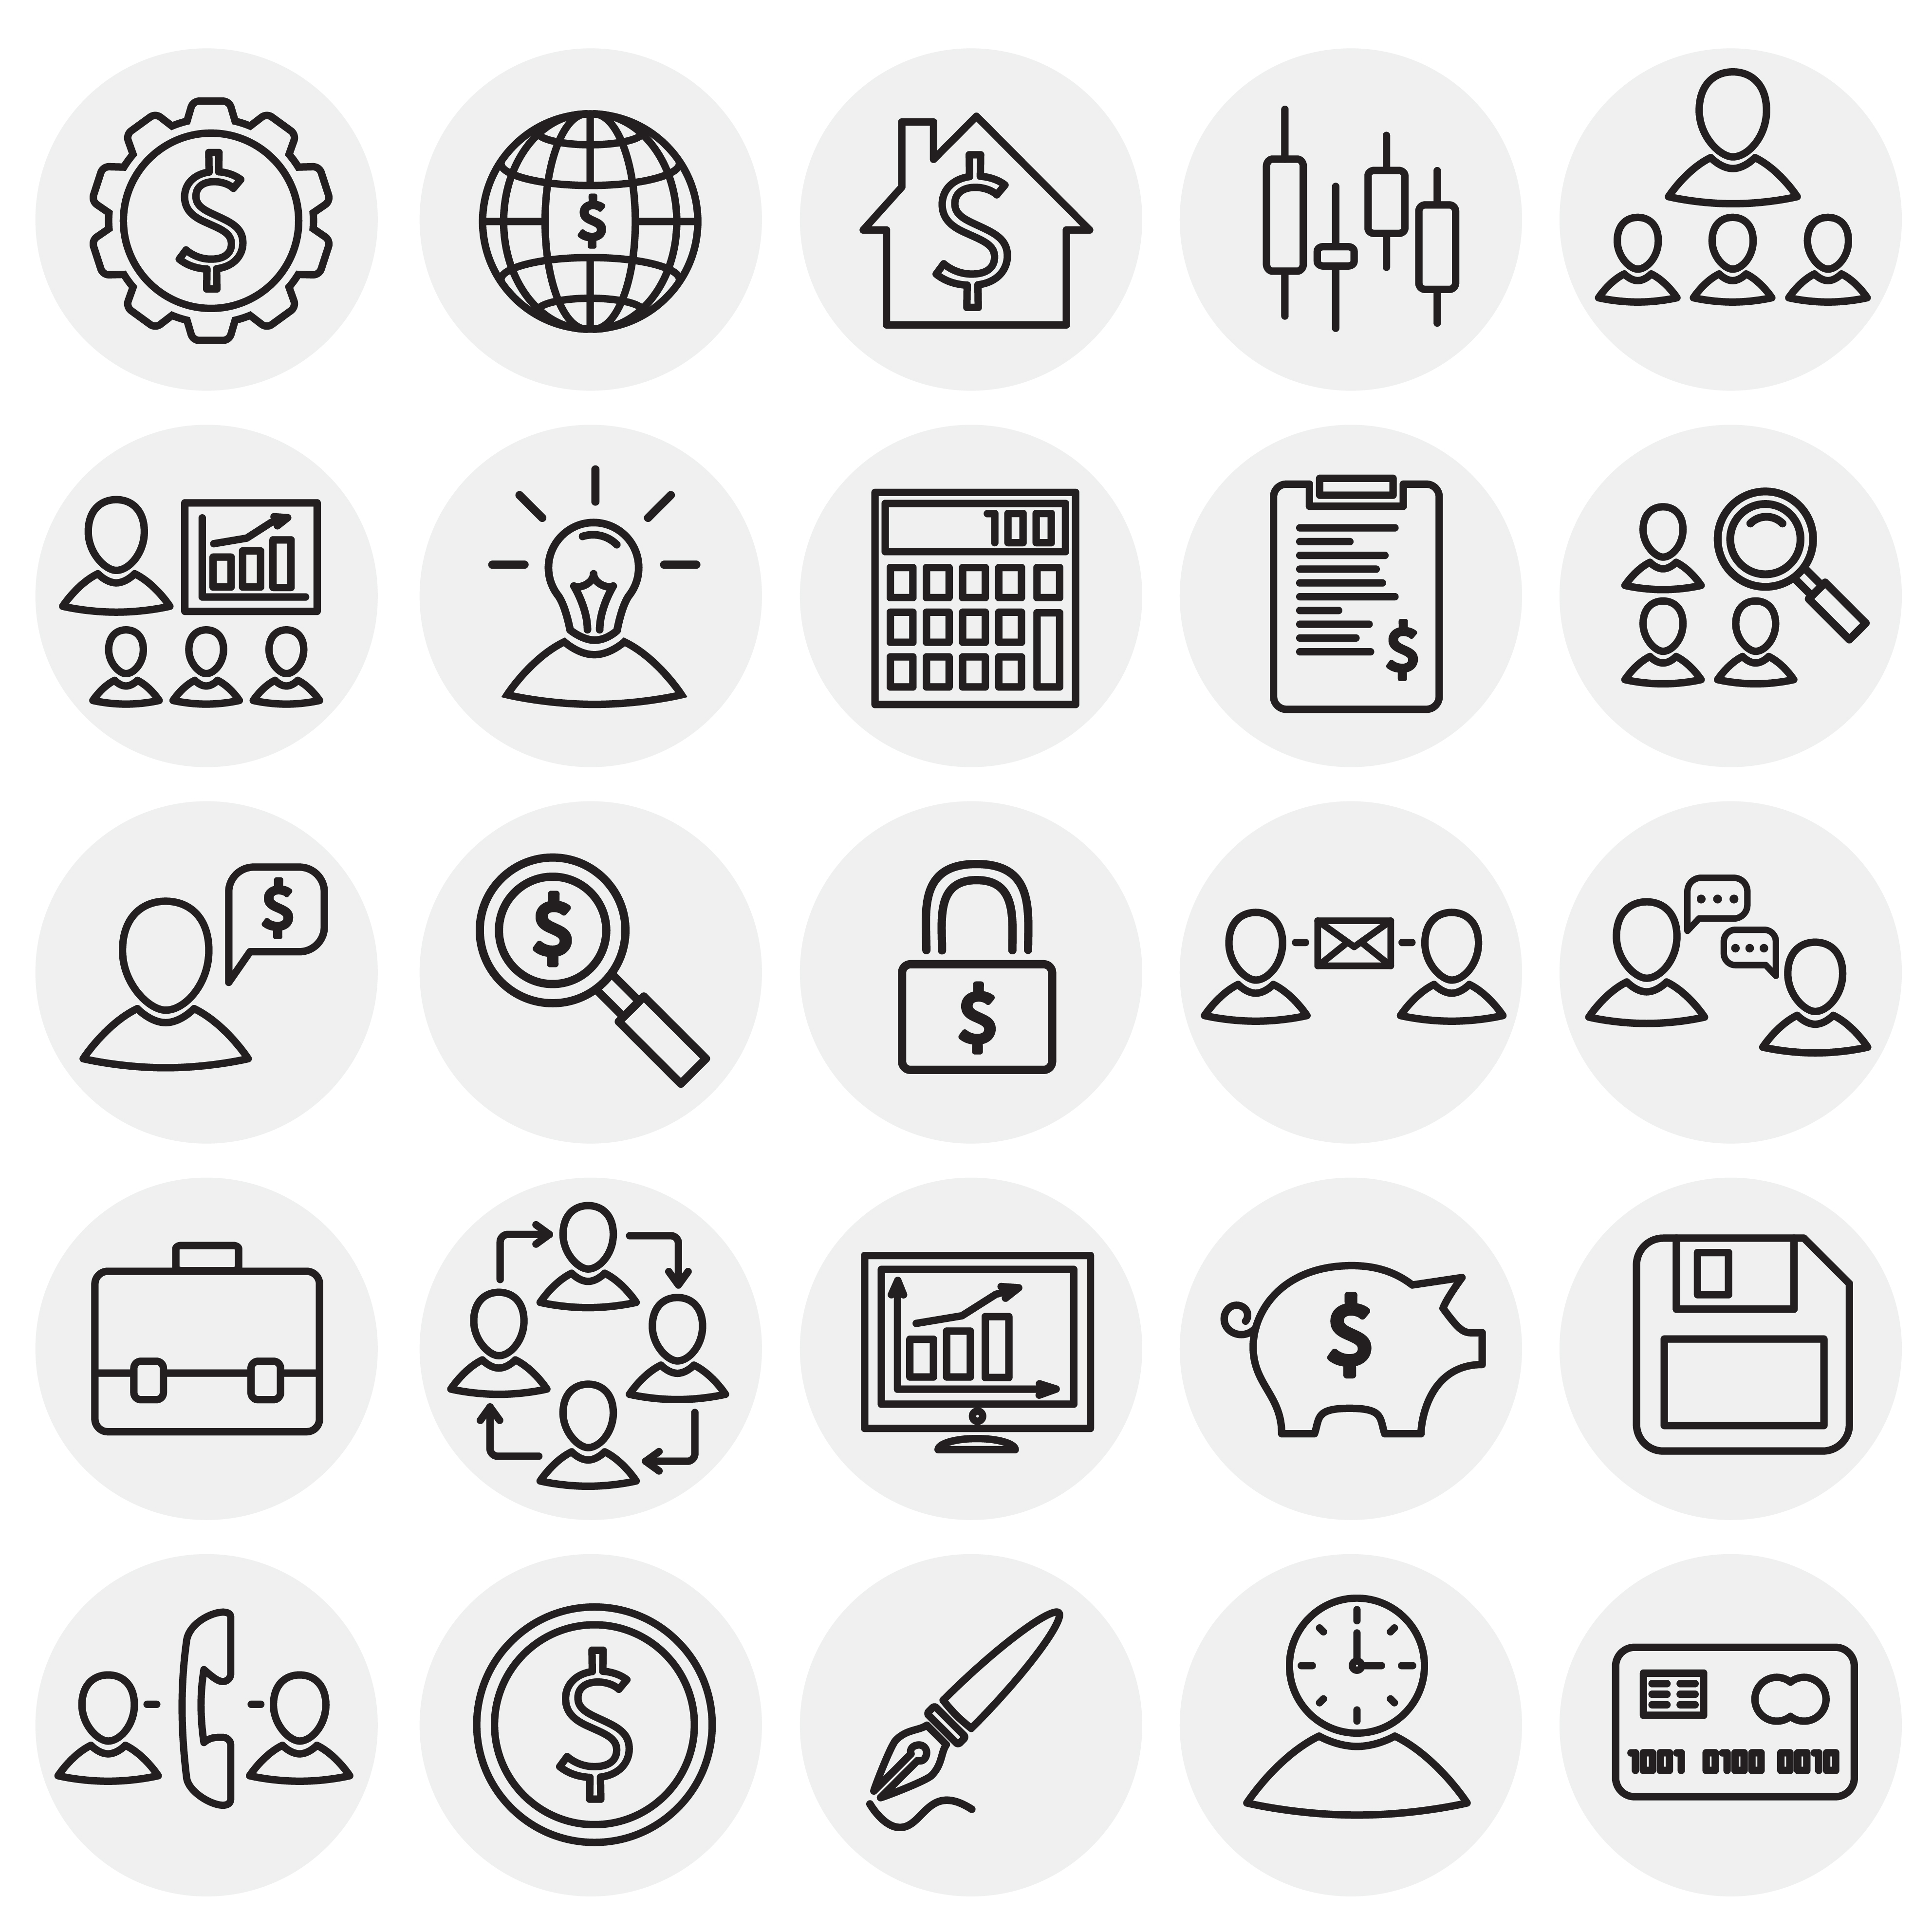 Business thin line icons set on circles white background.jpg